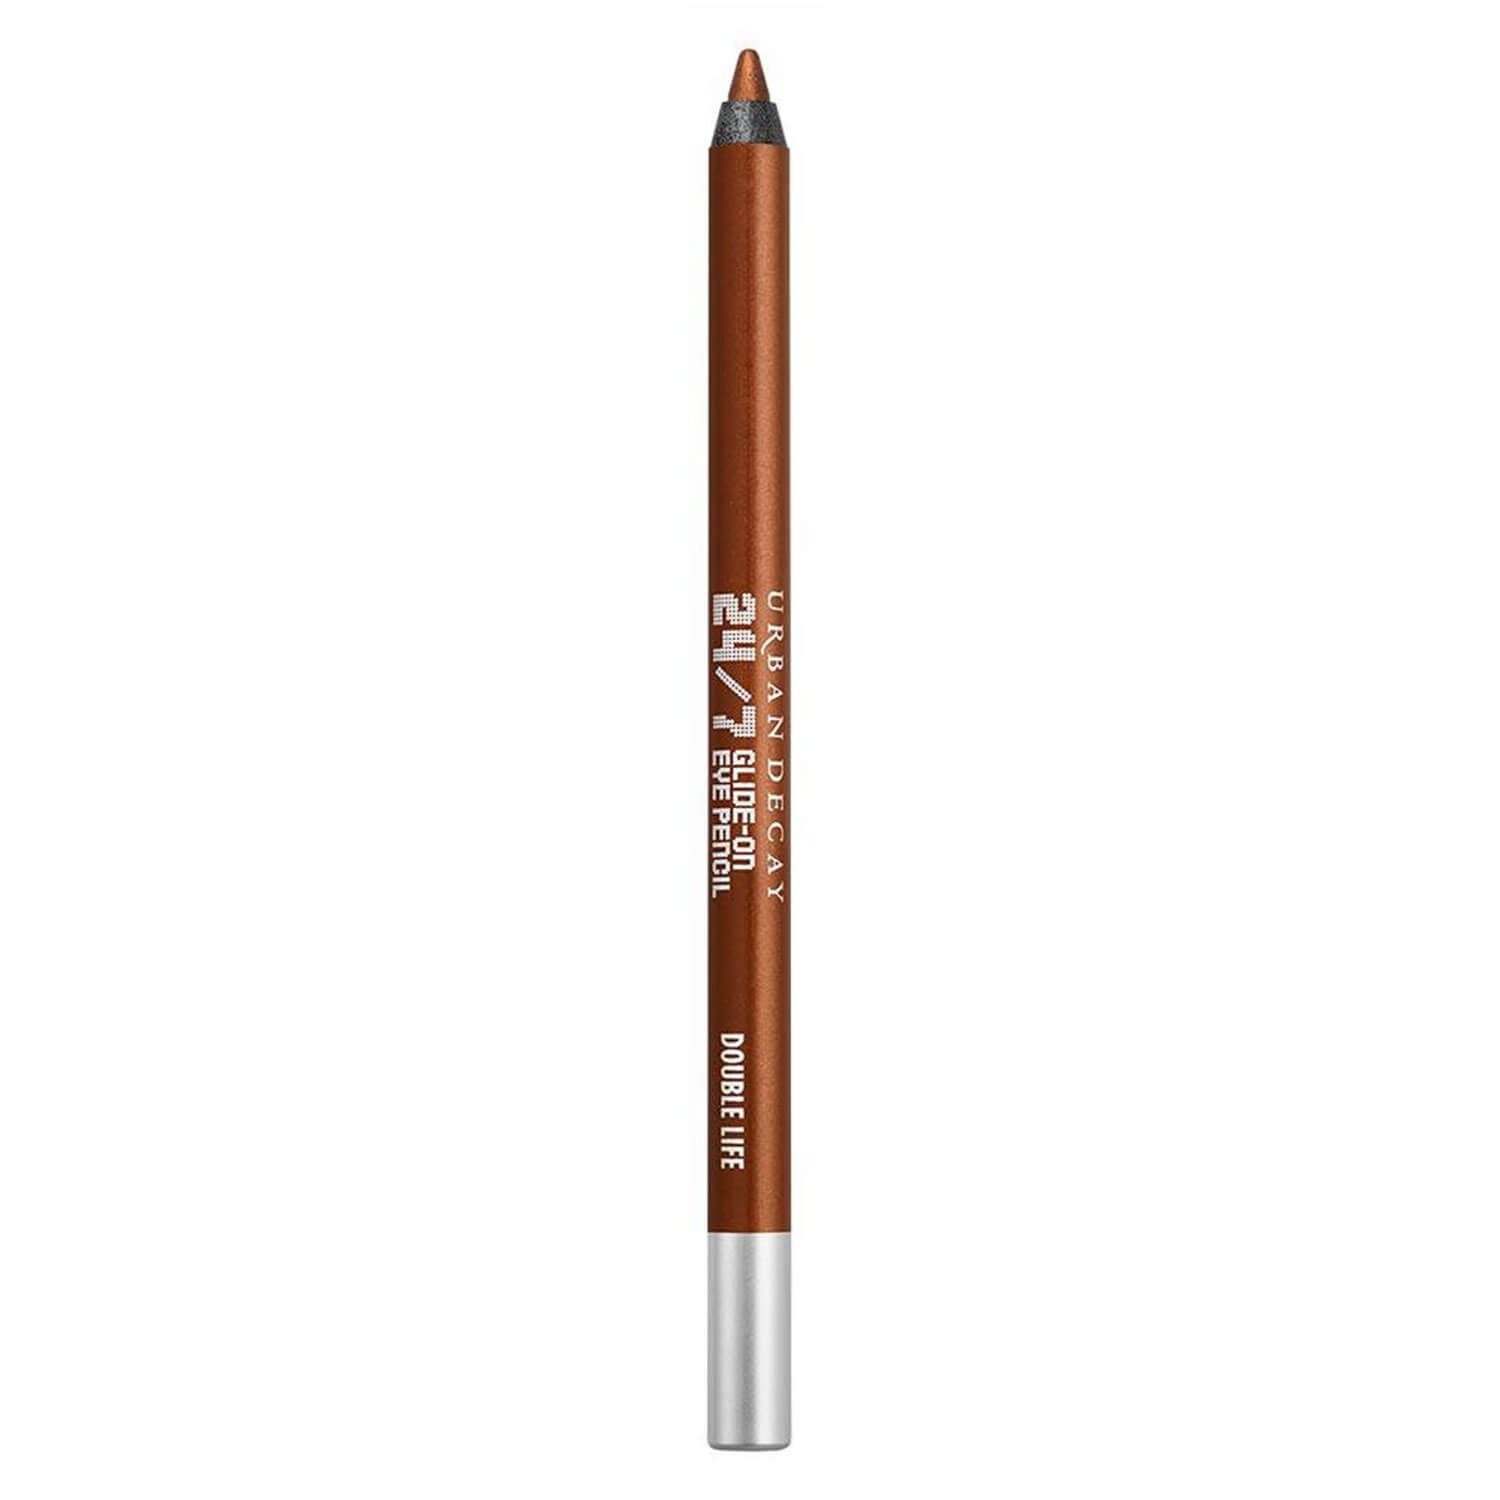 24/7 Glide-On - Eye Pencil Double Life